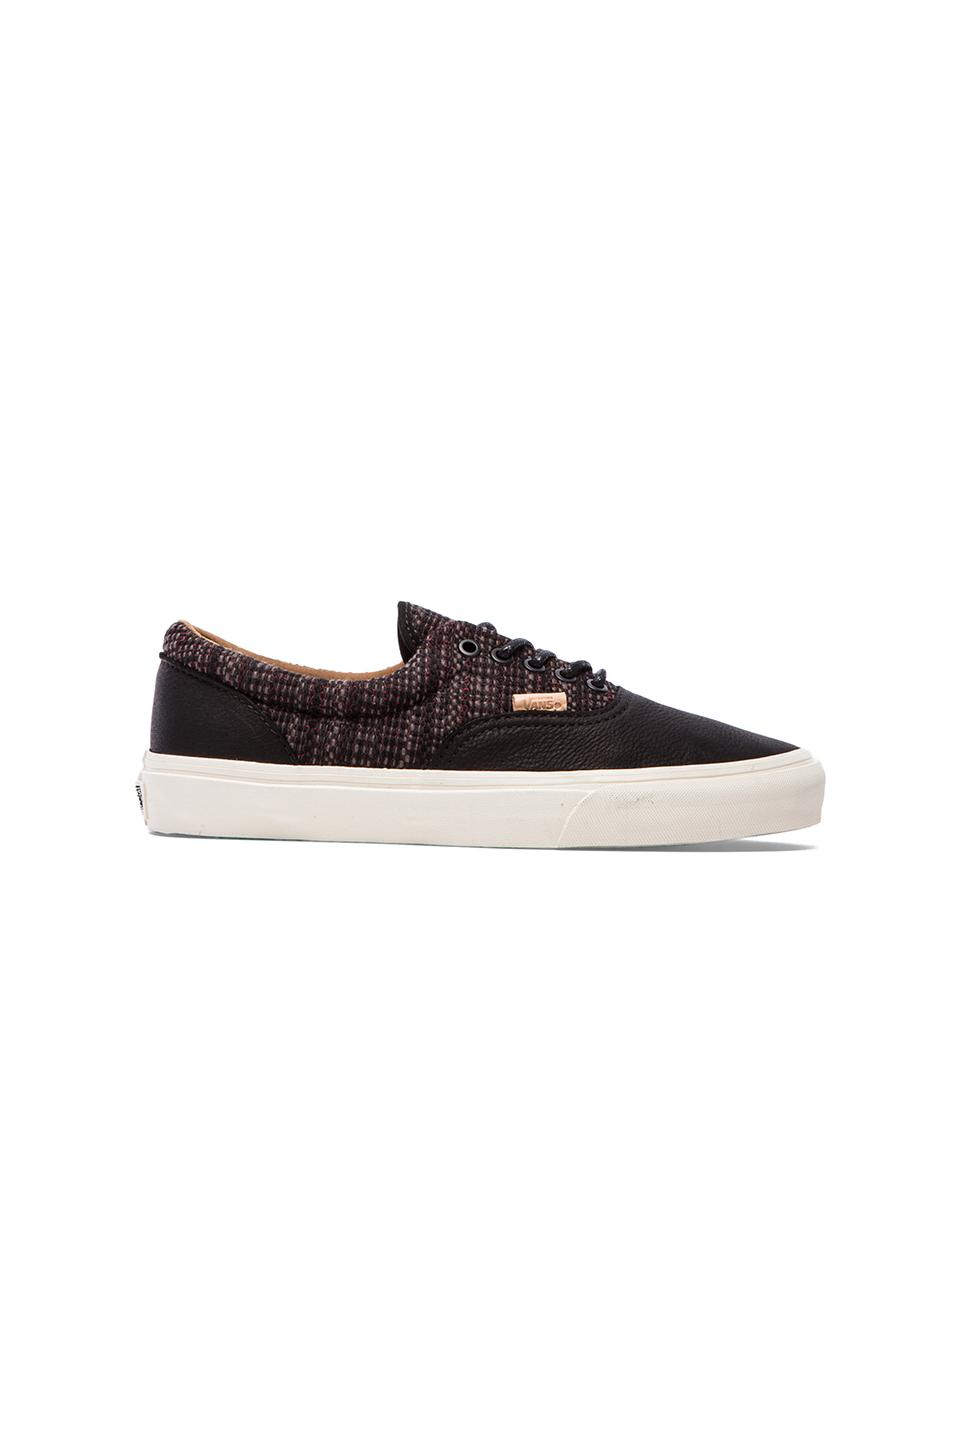 Vans California Era CA Italian Weave in Black/Burnt Orange